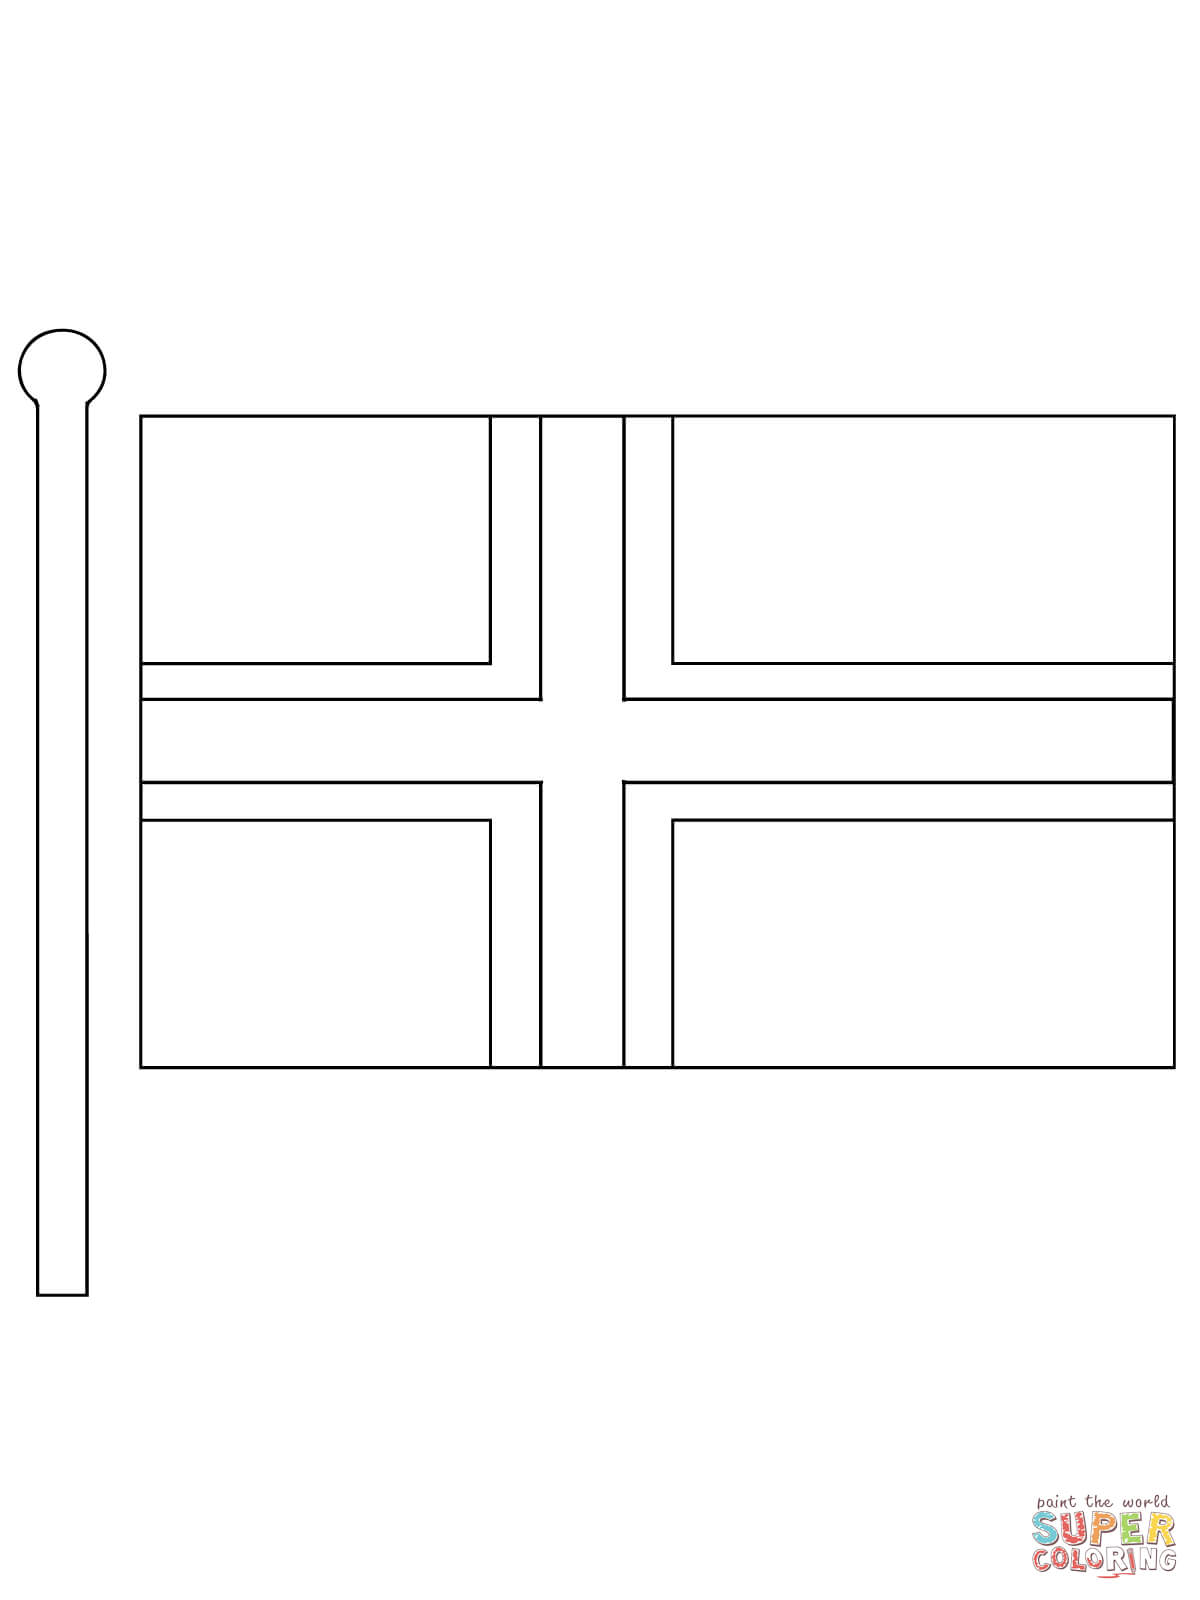 norway flag coloring page image result for denmark printable pages flag coloring page coloring flag norway